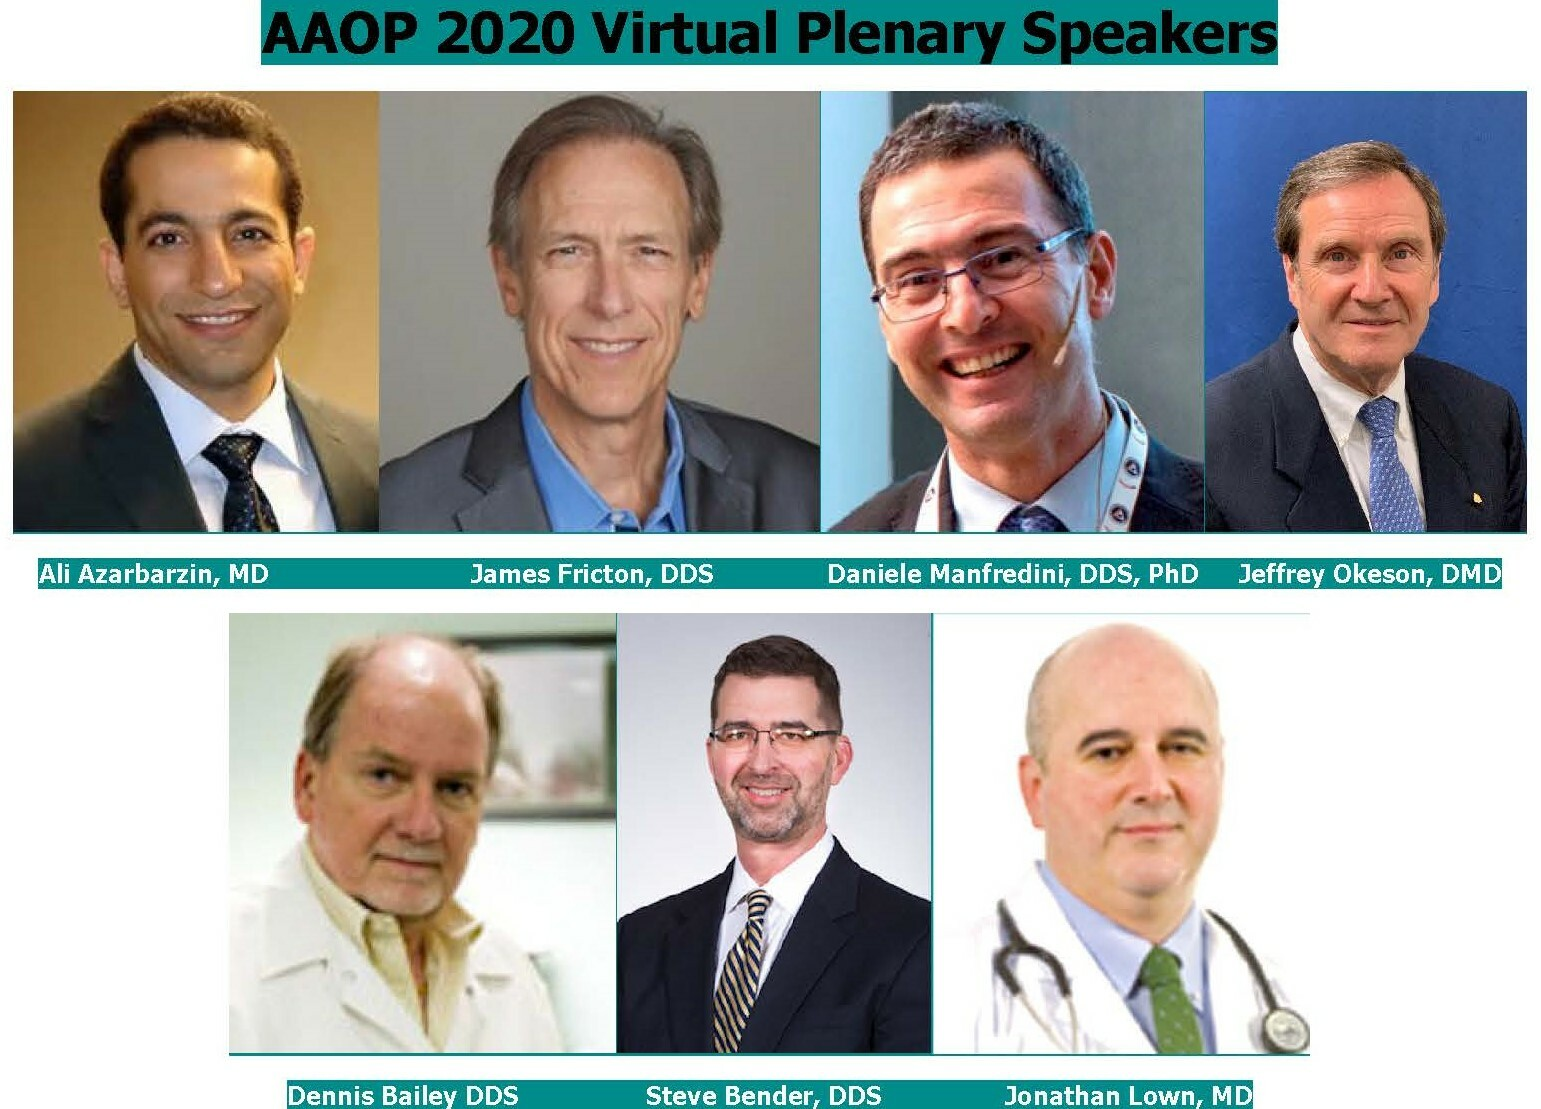 AAOP 2020 Virtual Speakers